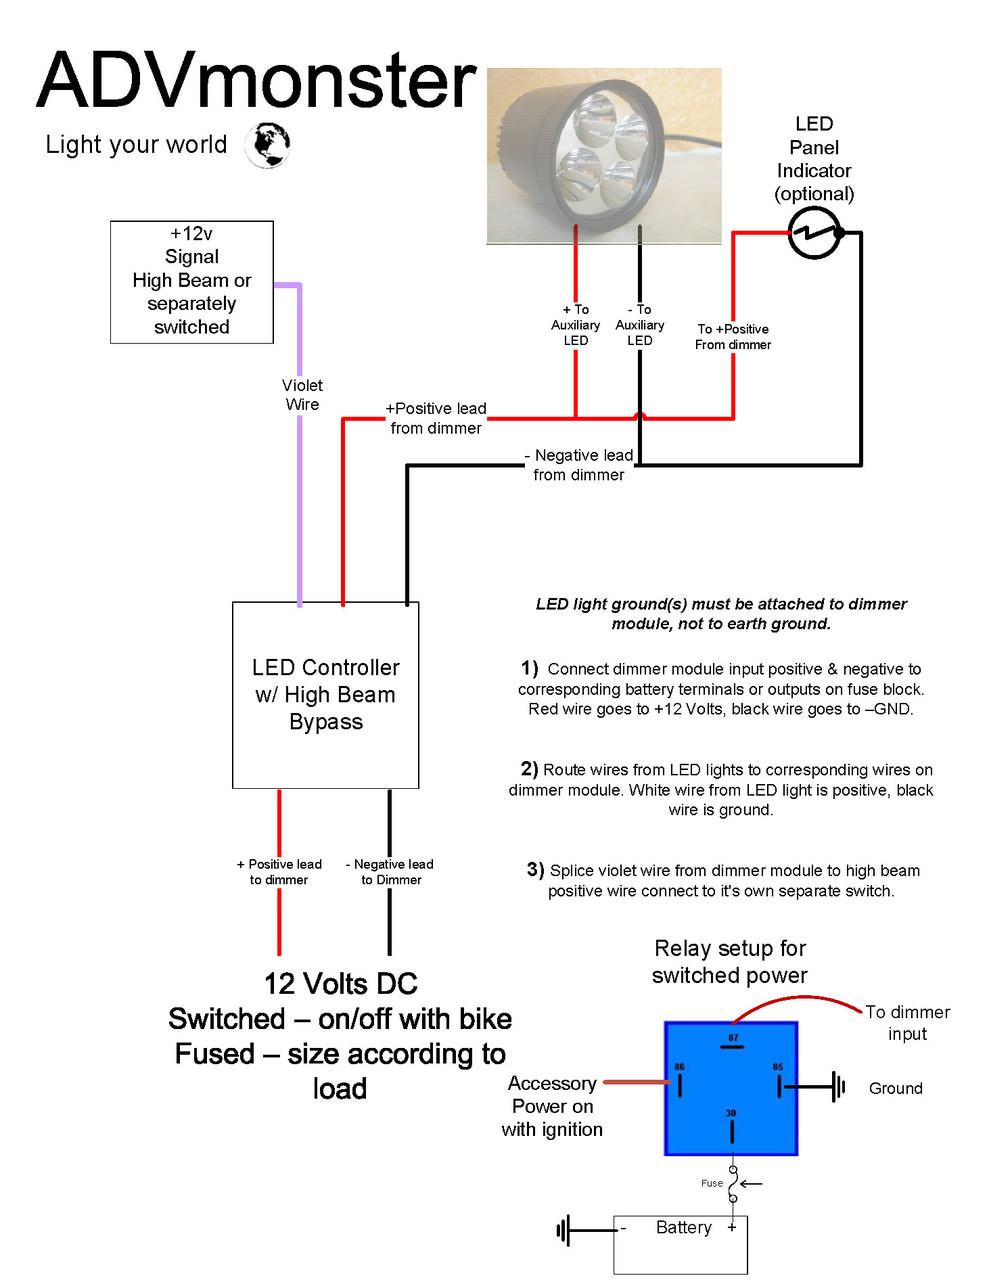 recommended wiring diagram with led controller [ 989 x 1280 Pixel ]